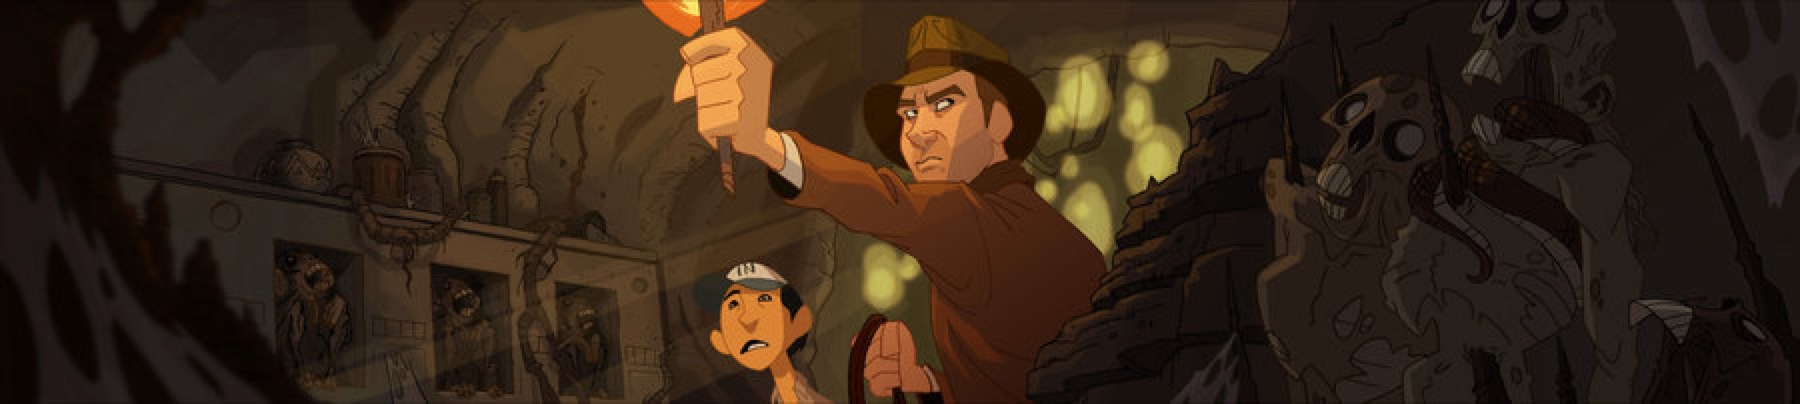 Indiana Jones e la sua avventura animata fan-made